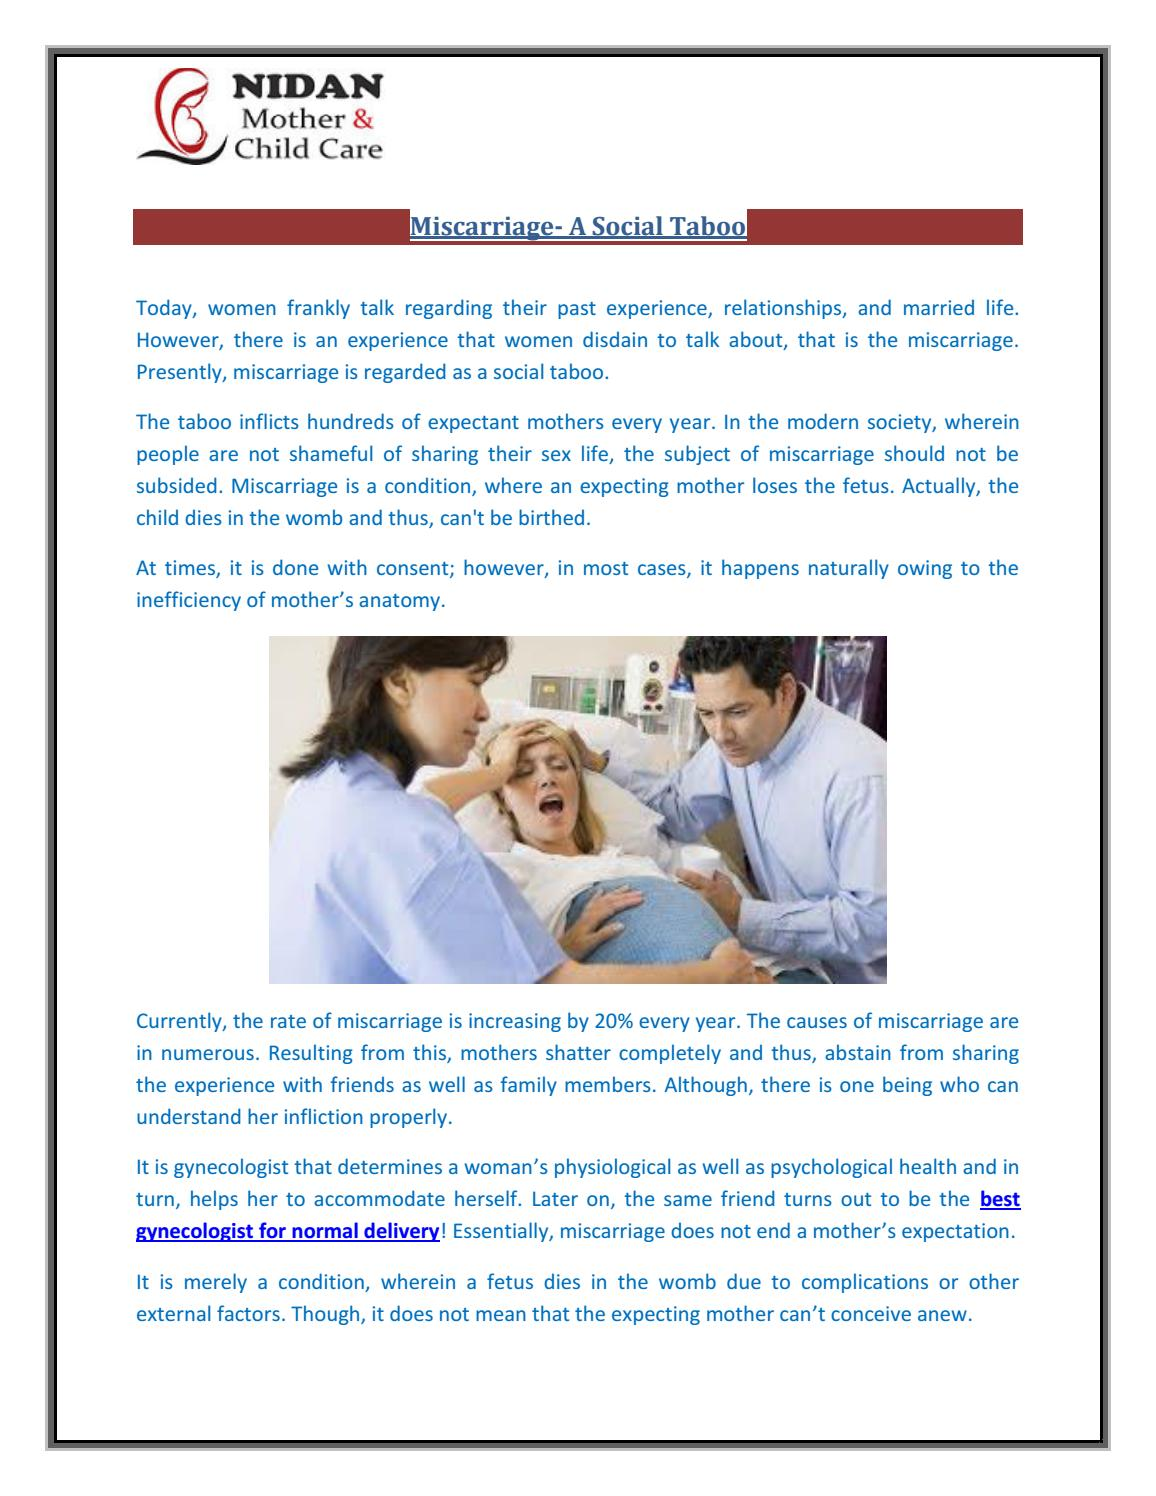 Miscarriage a social taboo by Nidan Child Care - issuu